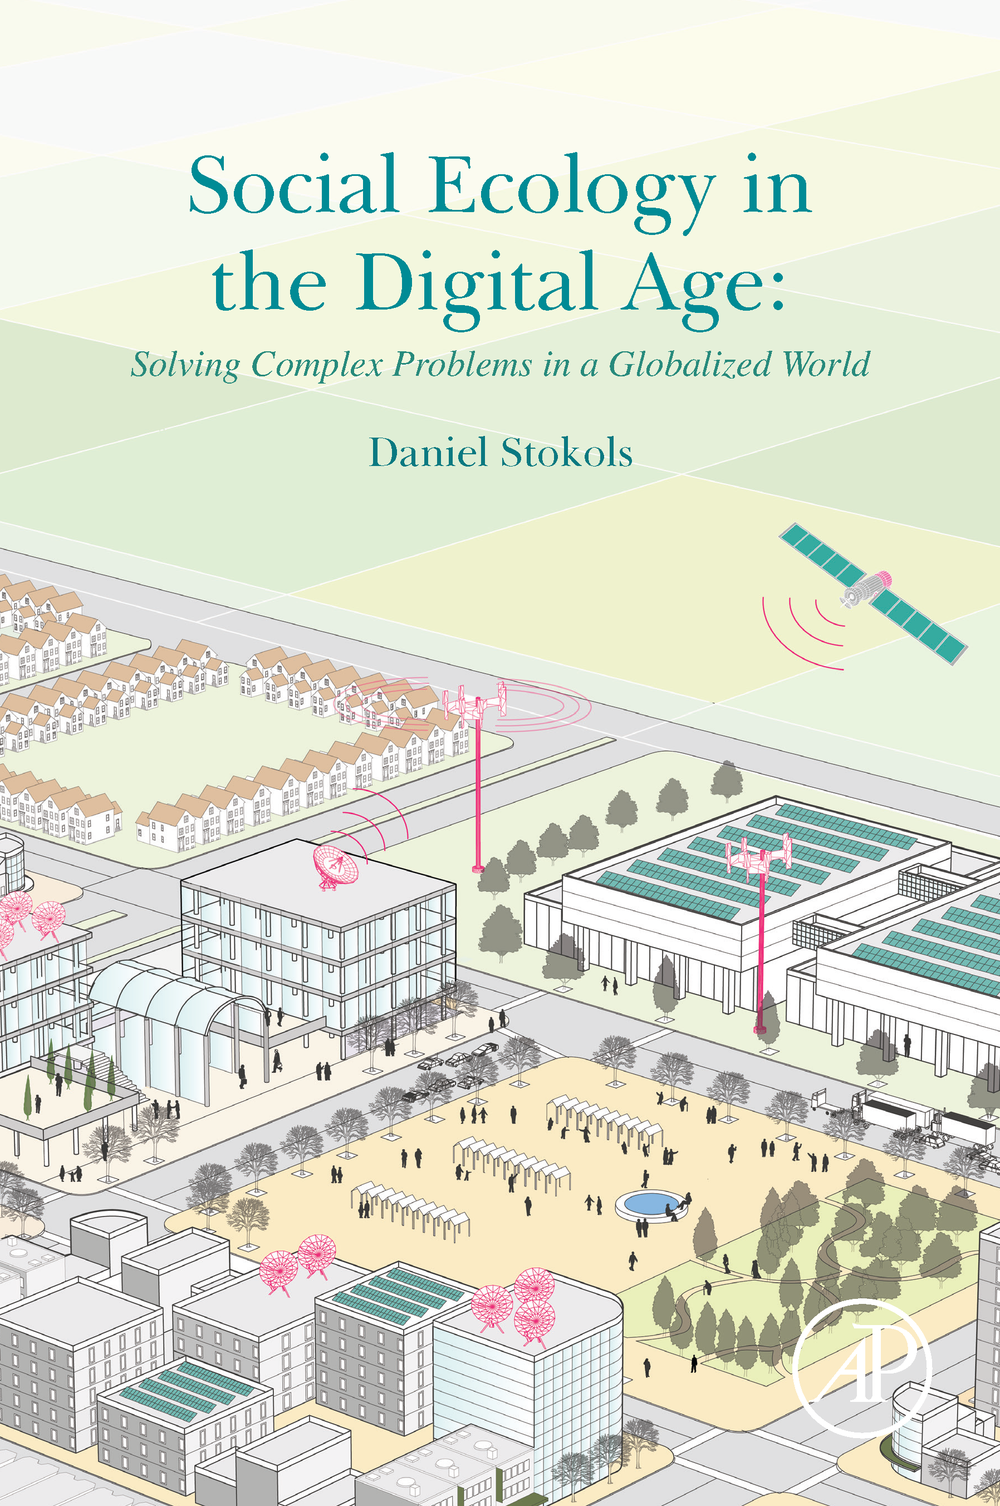 Social Ecology in the Digital Age.   Cover Art for Book.